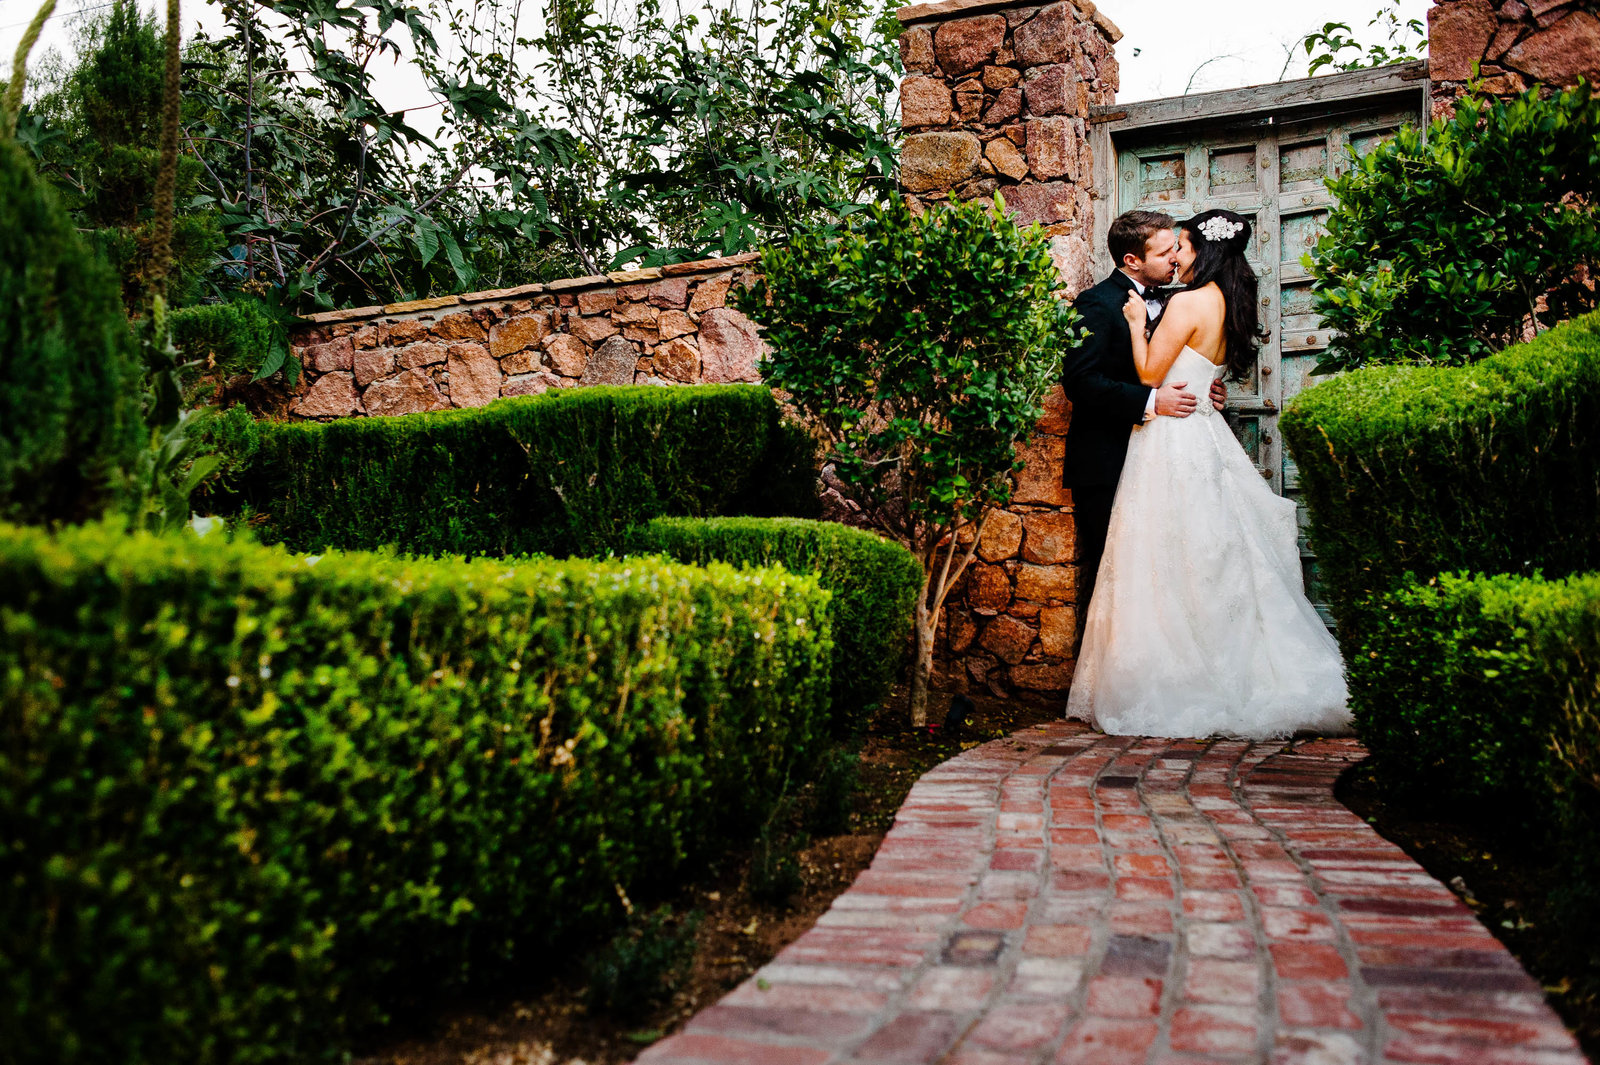 304-El-paso-wedding-photographer-El Paso Wedding Photographer_P15